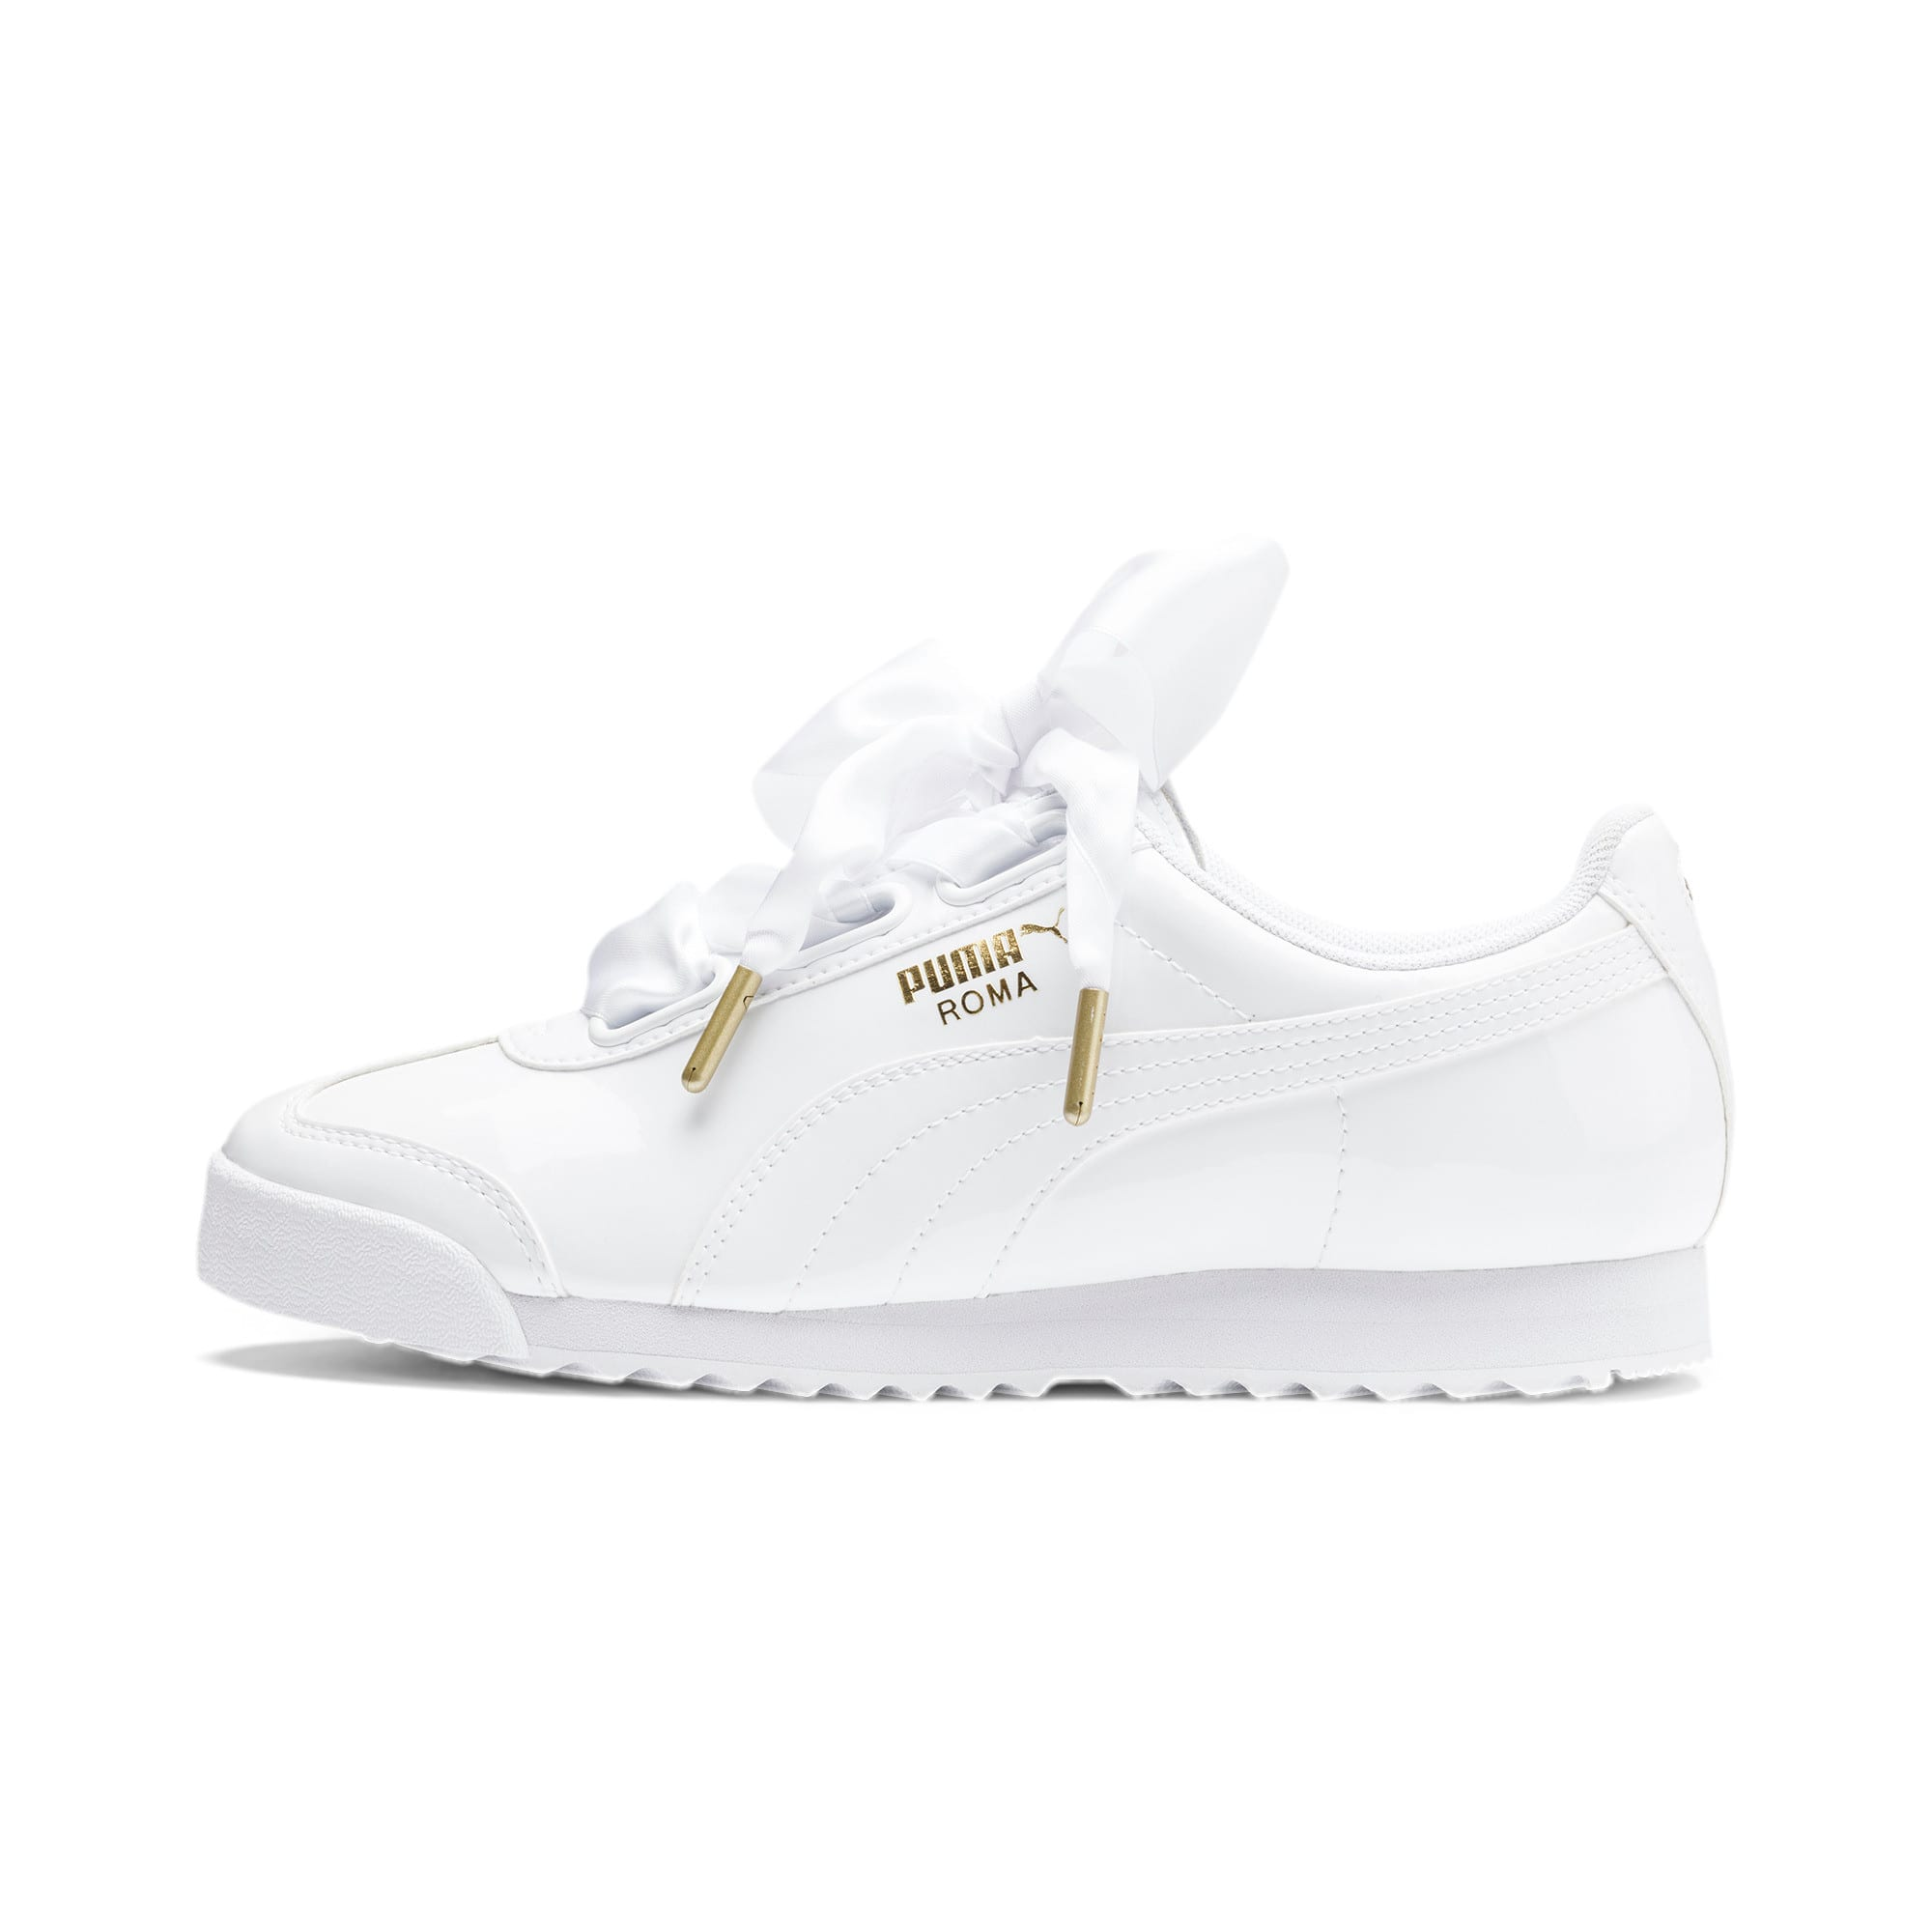 Roma Heart Patent Women's Sneakers, Puma White-Puma Team Gold, large